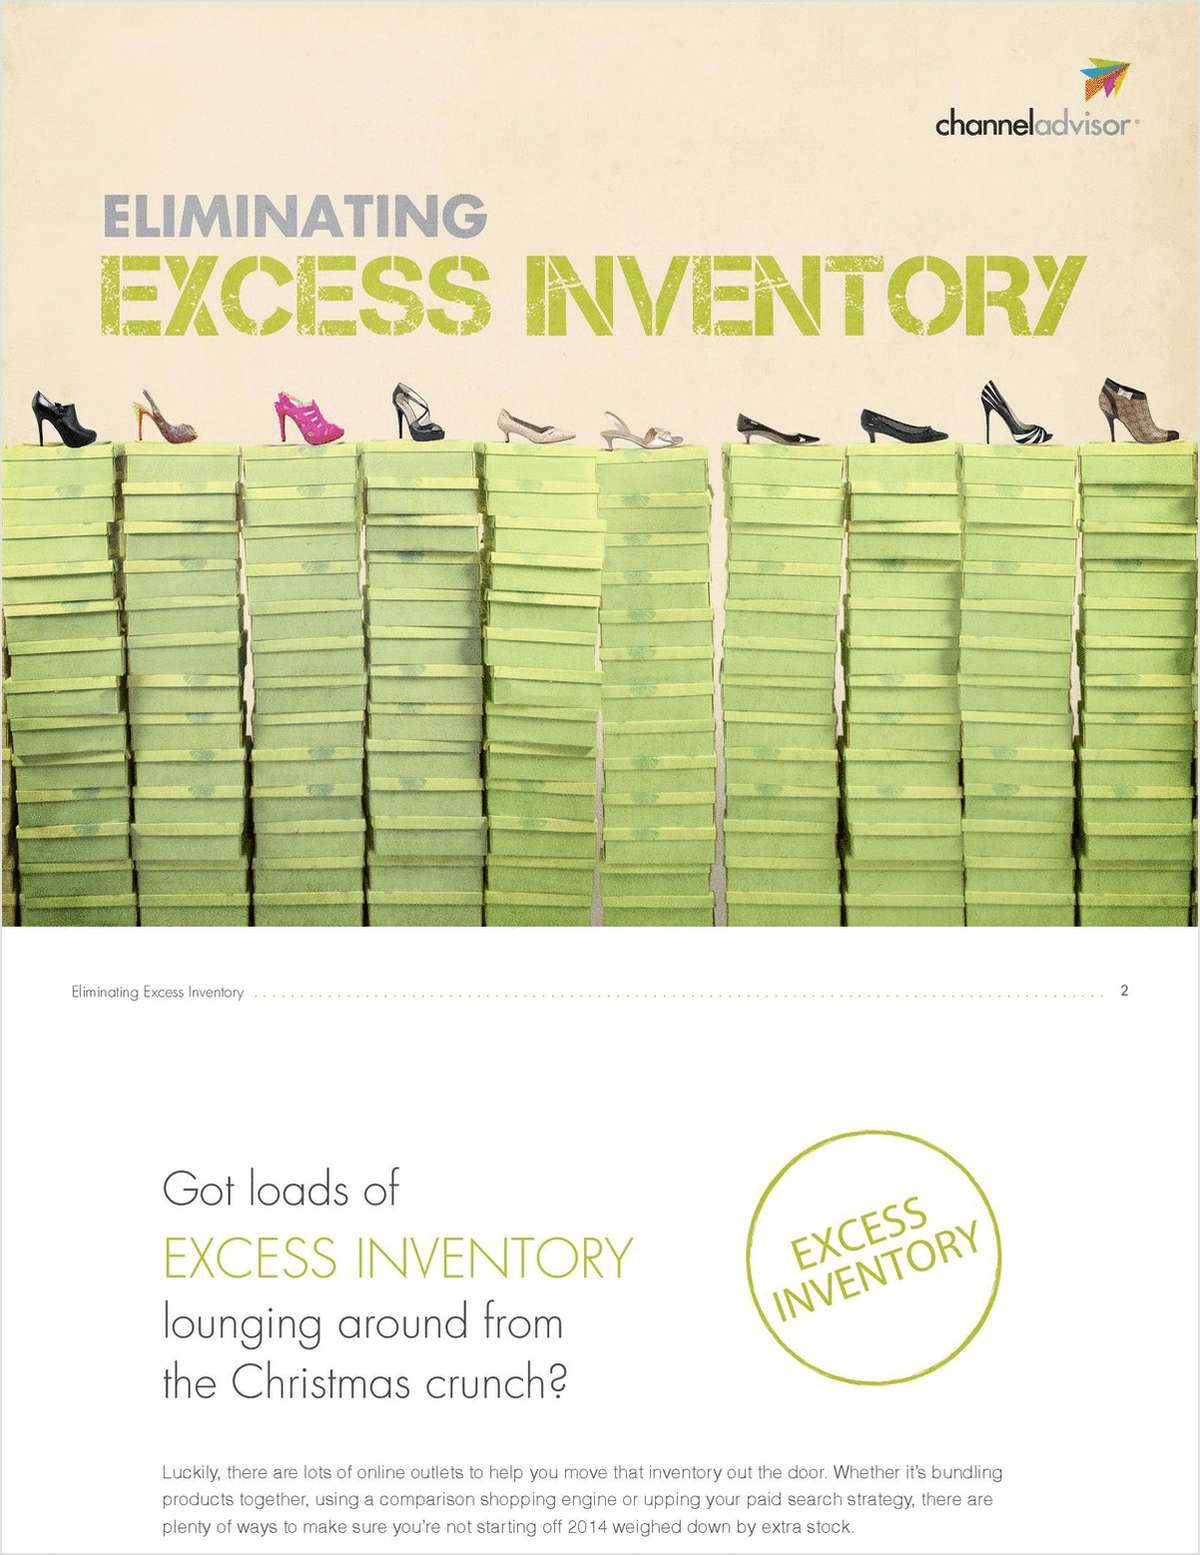 9 Tips to Help You Eliminate Your Excess Inventory